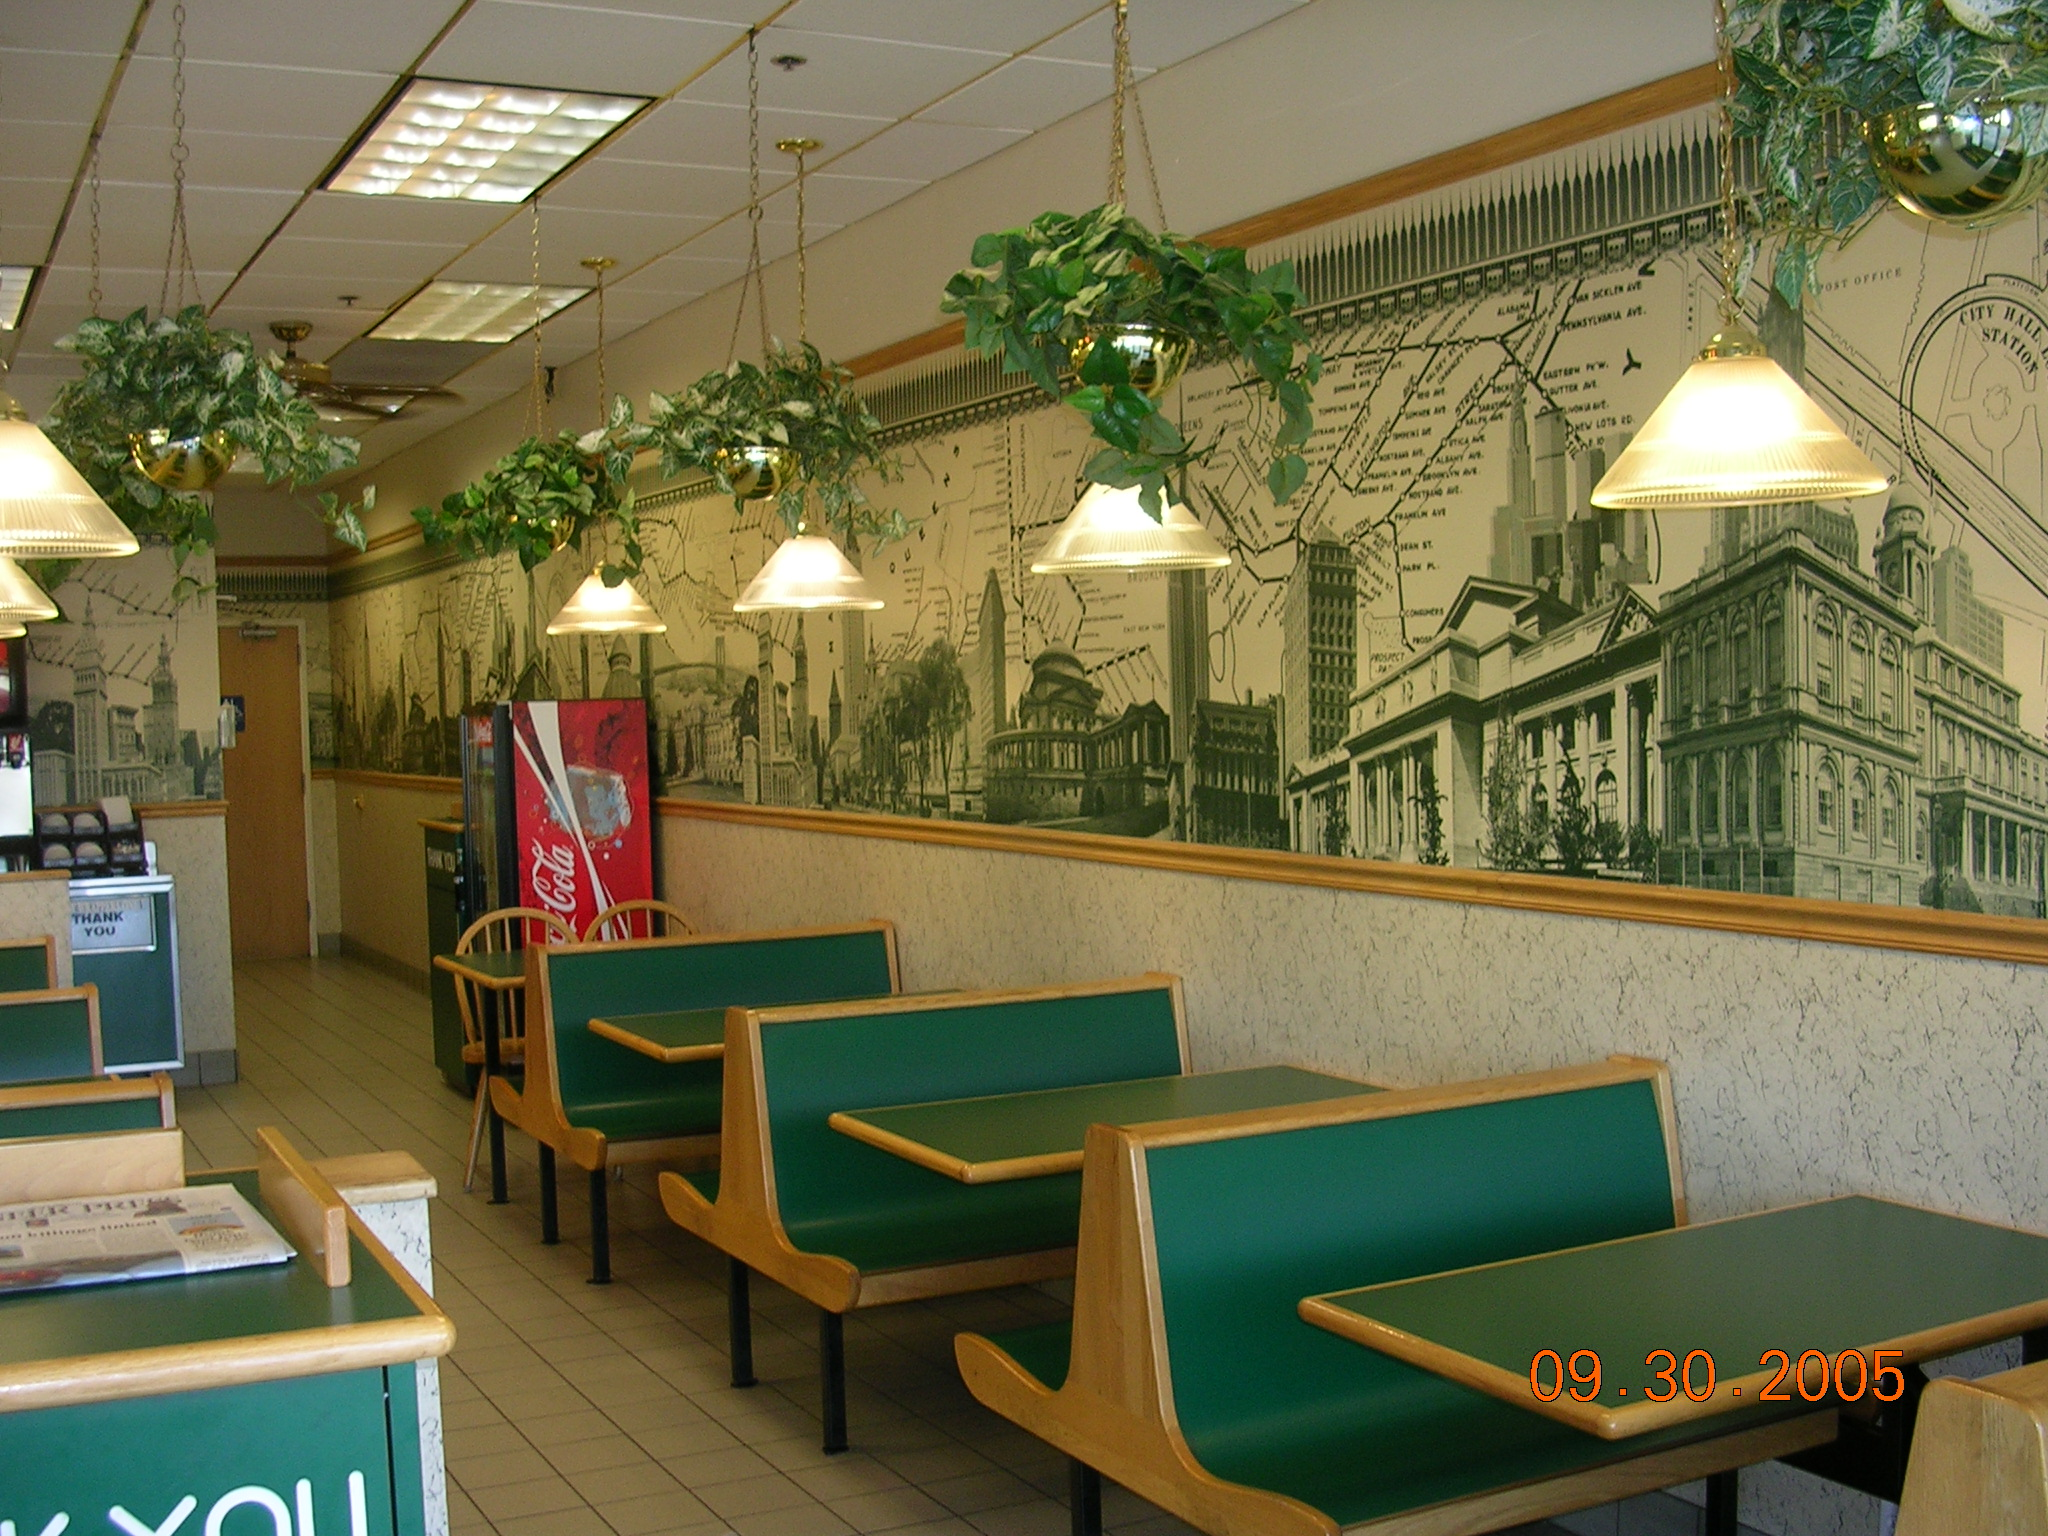 Download Subway Restaurant Wallpaper Gallery